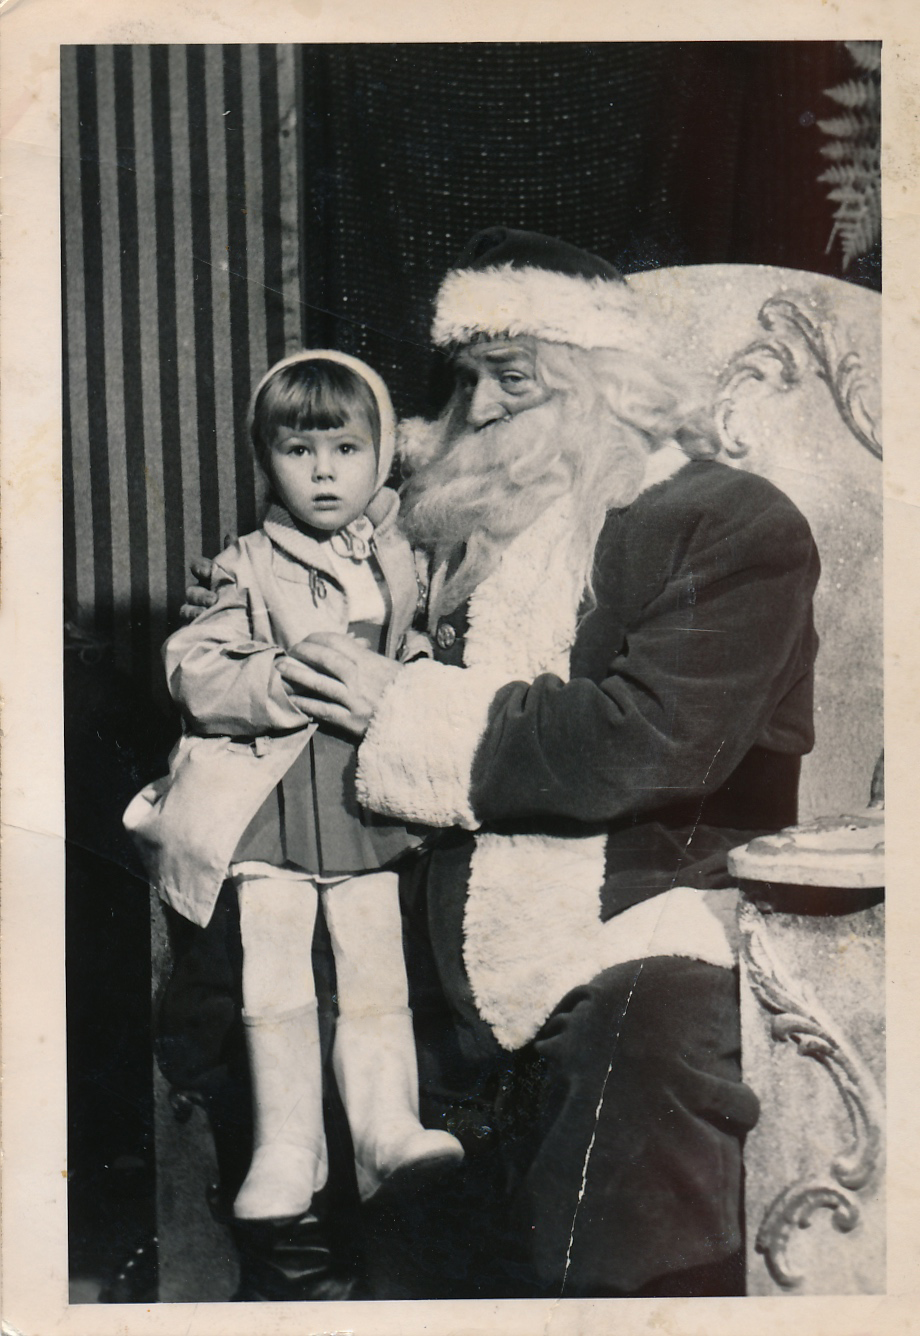 (Image: A young girl in winter hat and coat with white leotards and white boots sitting on Santa's lap.)